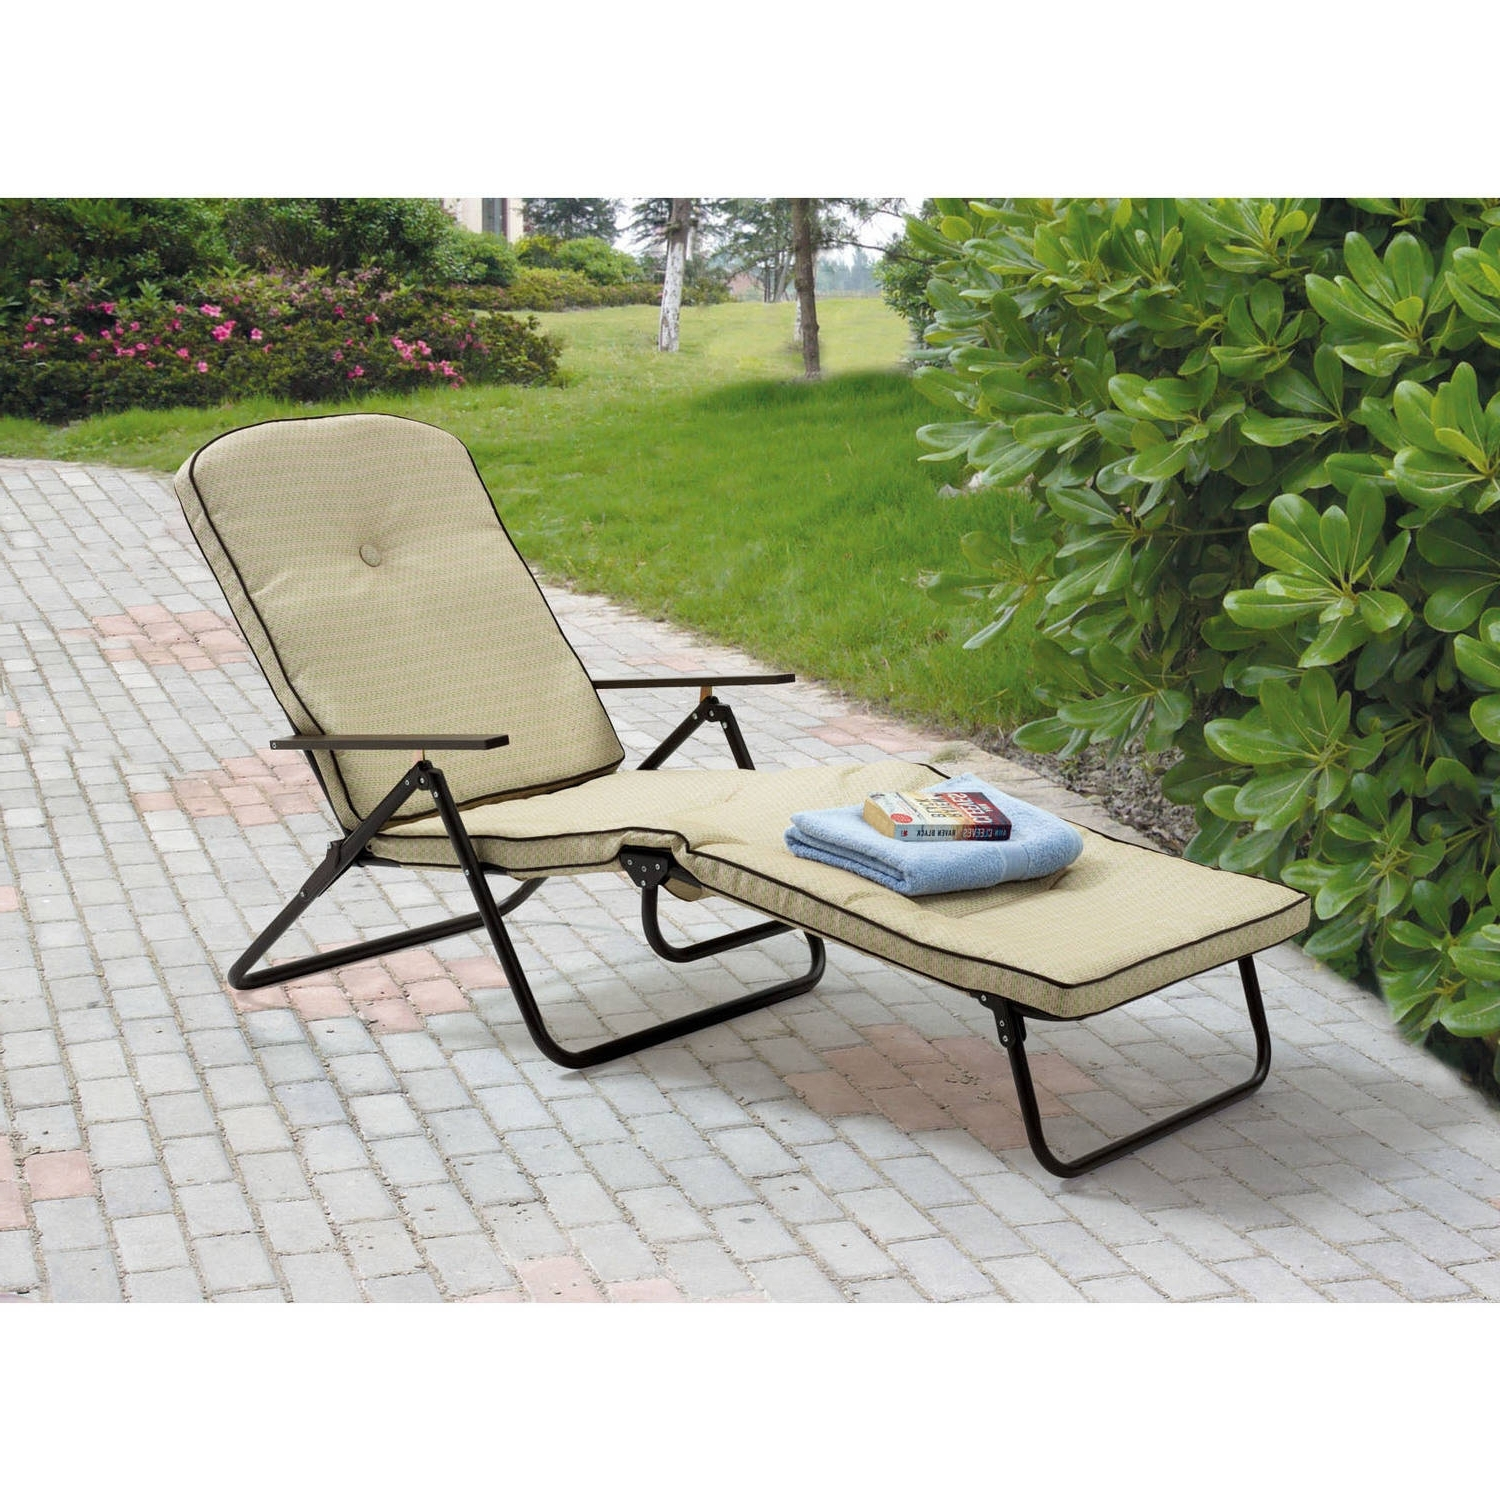 Latest Folding Chaise Lounge Chairs With Regard To Mainstays Sand Dune Outdoor Padded Folding Chaise Lounge, Tan (View 9 of 15)